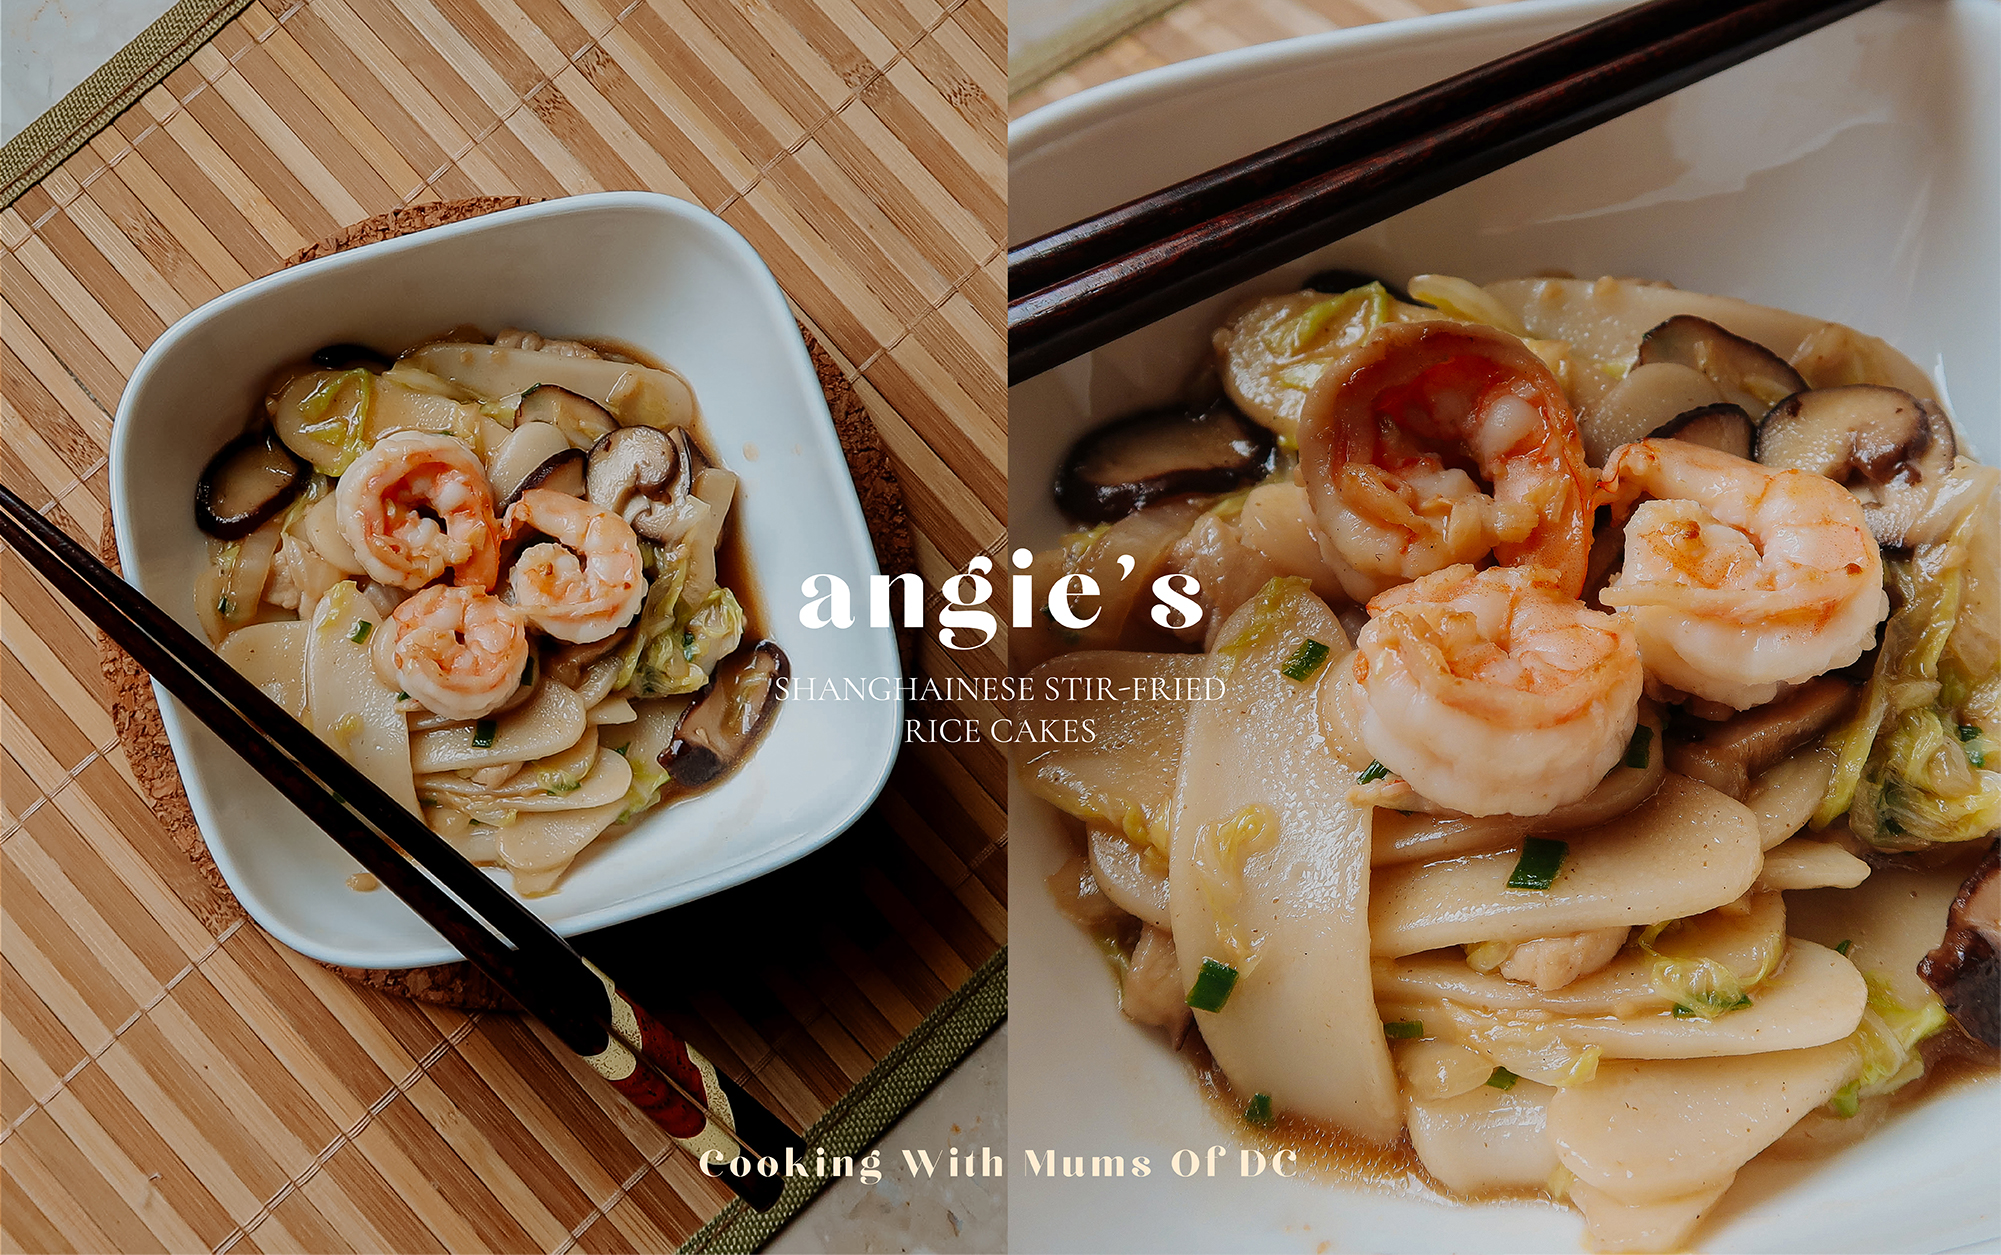 Cooking With Mums Of DC Edit: Angie's Shanghainese Stir-Fried Rice Cakes Recipe